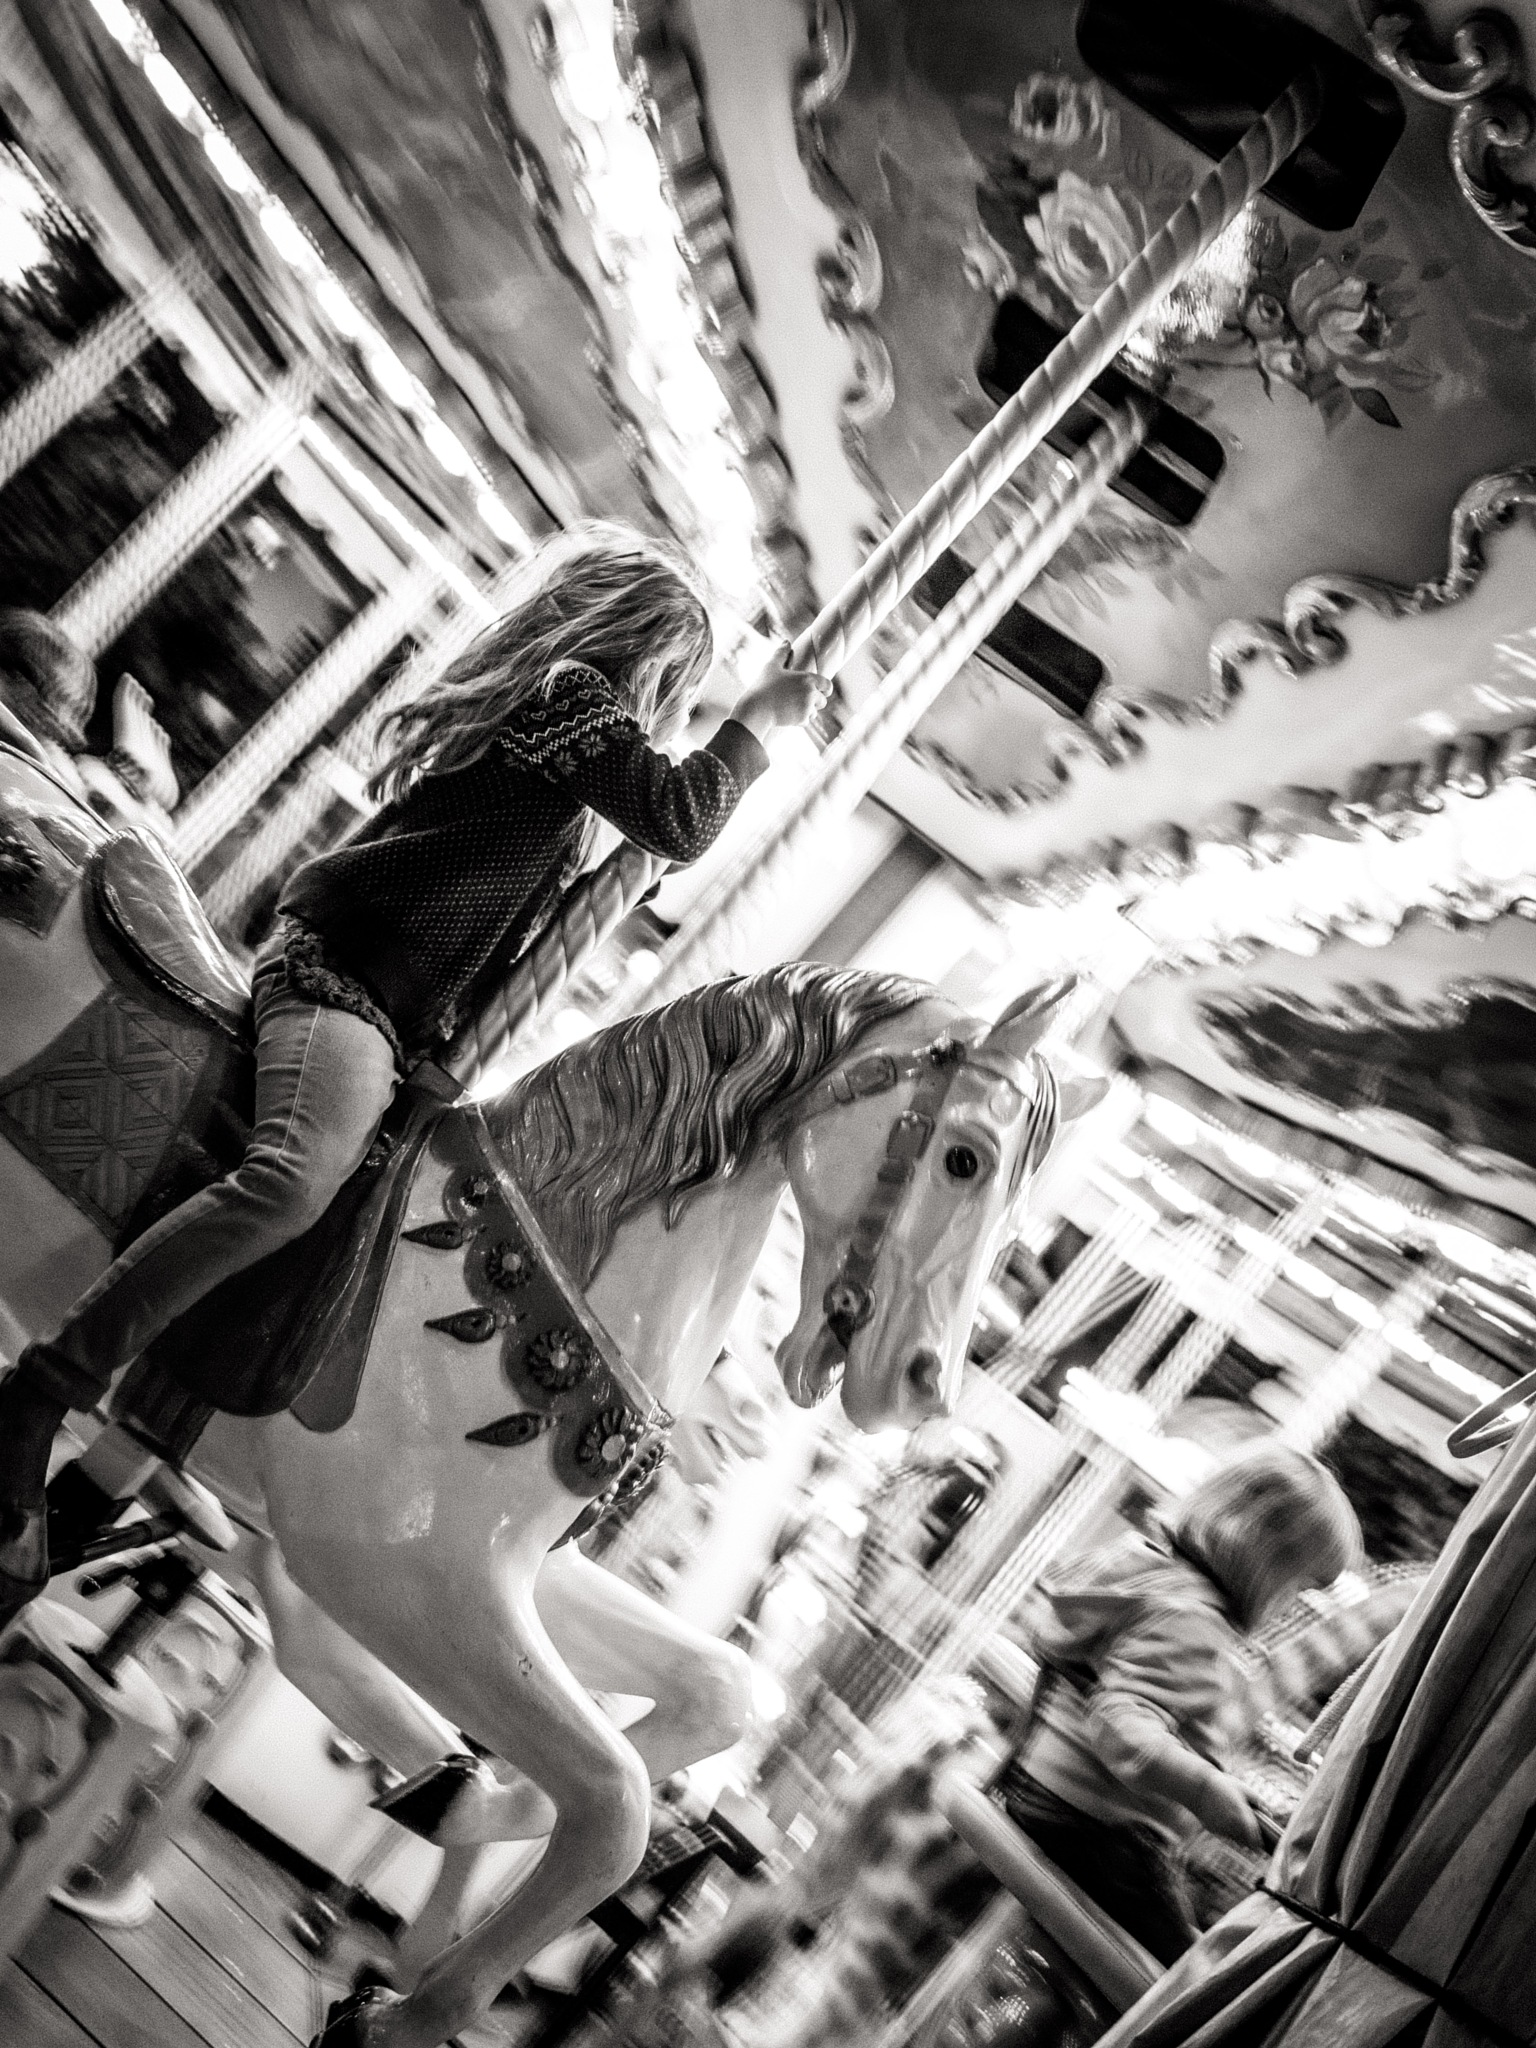 Hold fast to your merry-go-round memories by Sean Braff